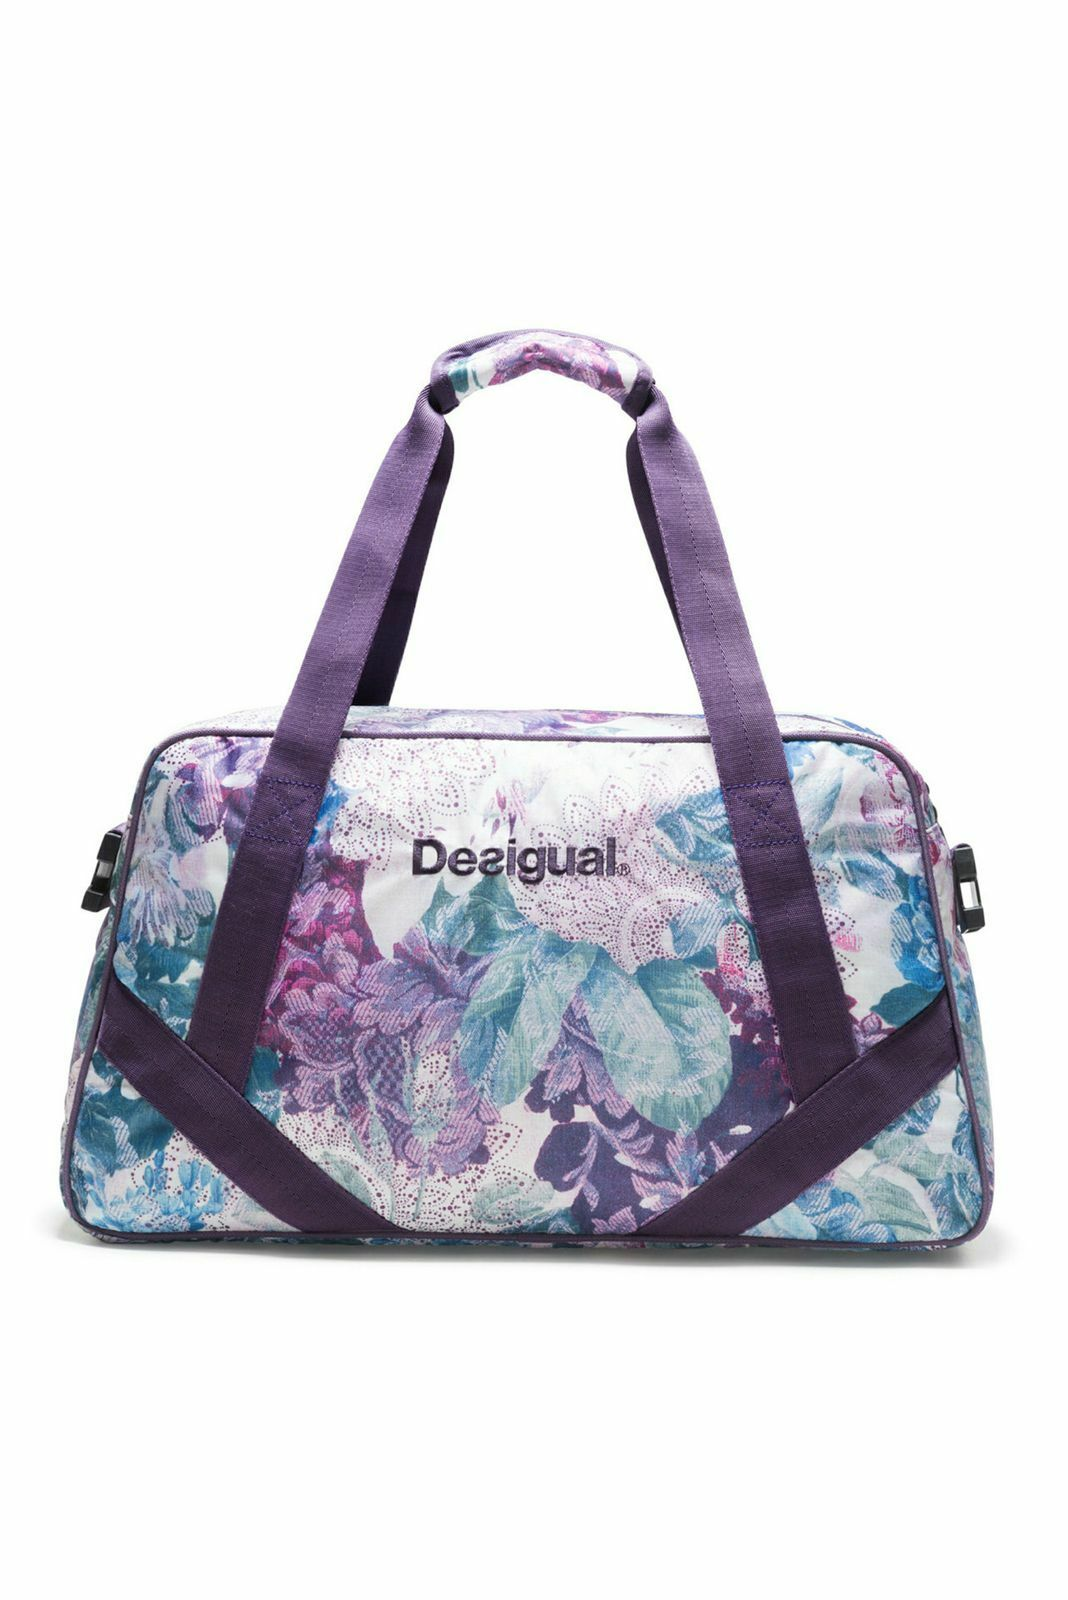 Desigual Art and Thread Carry Shoulder Bag Sporttasche Tasche Magenta Haze